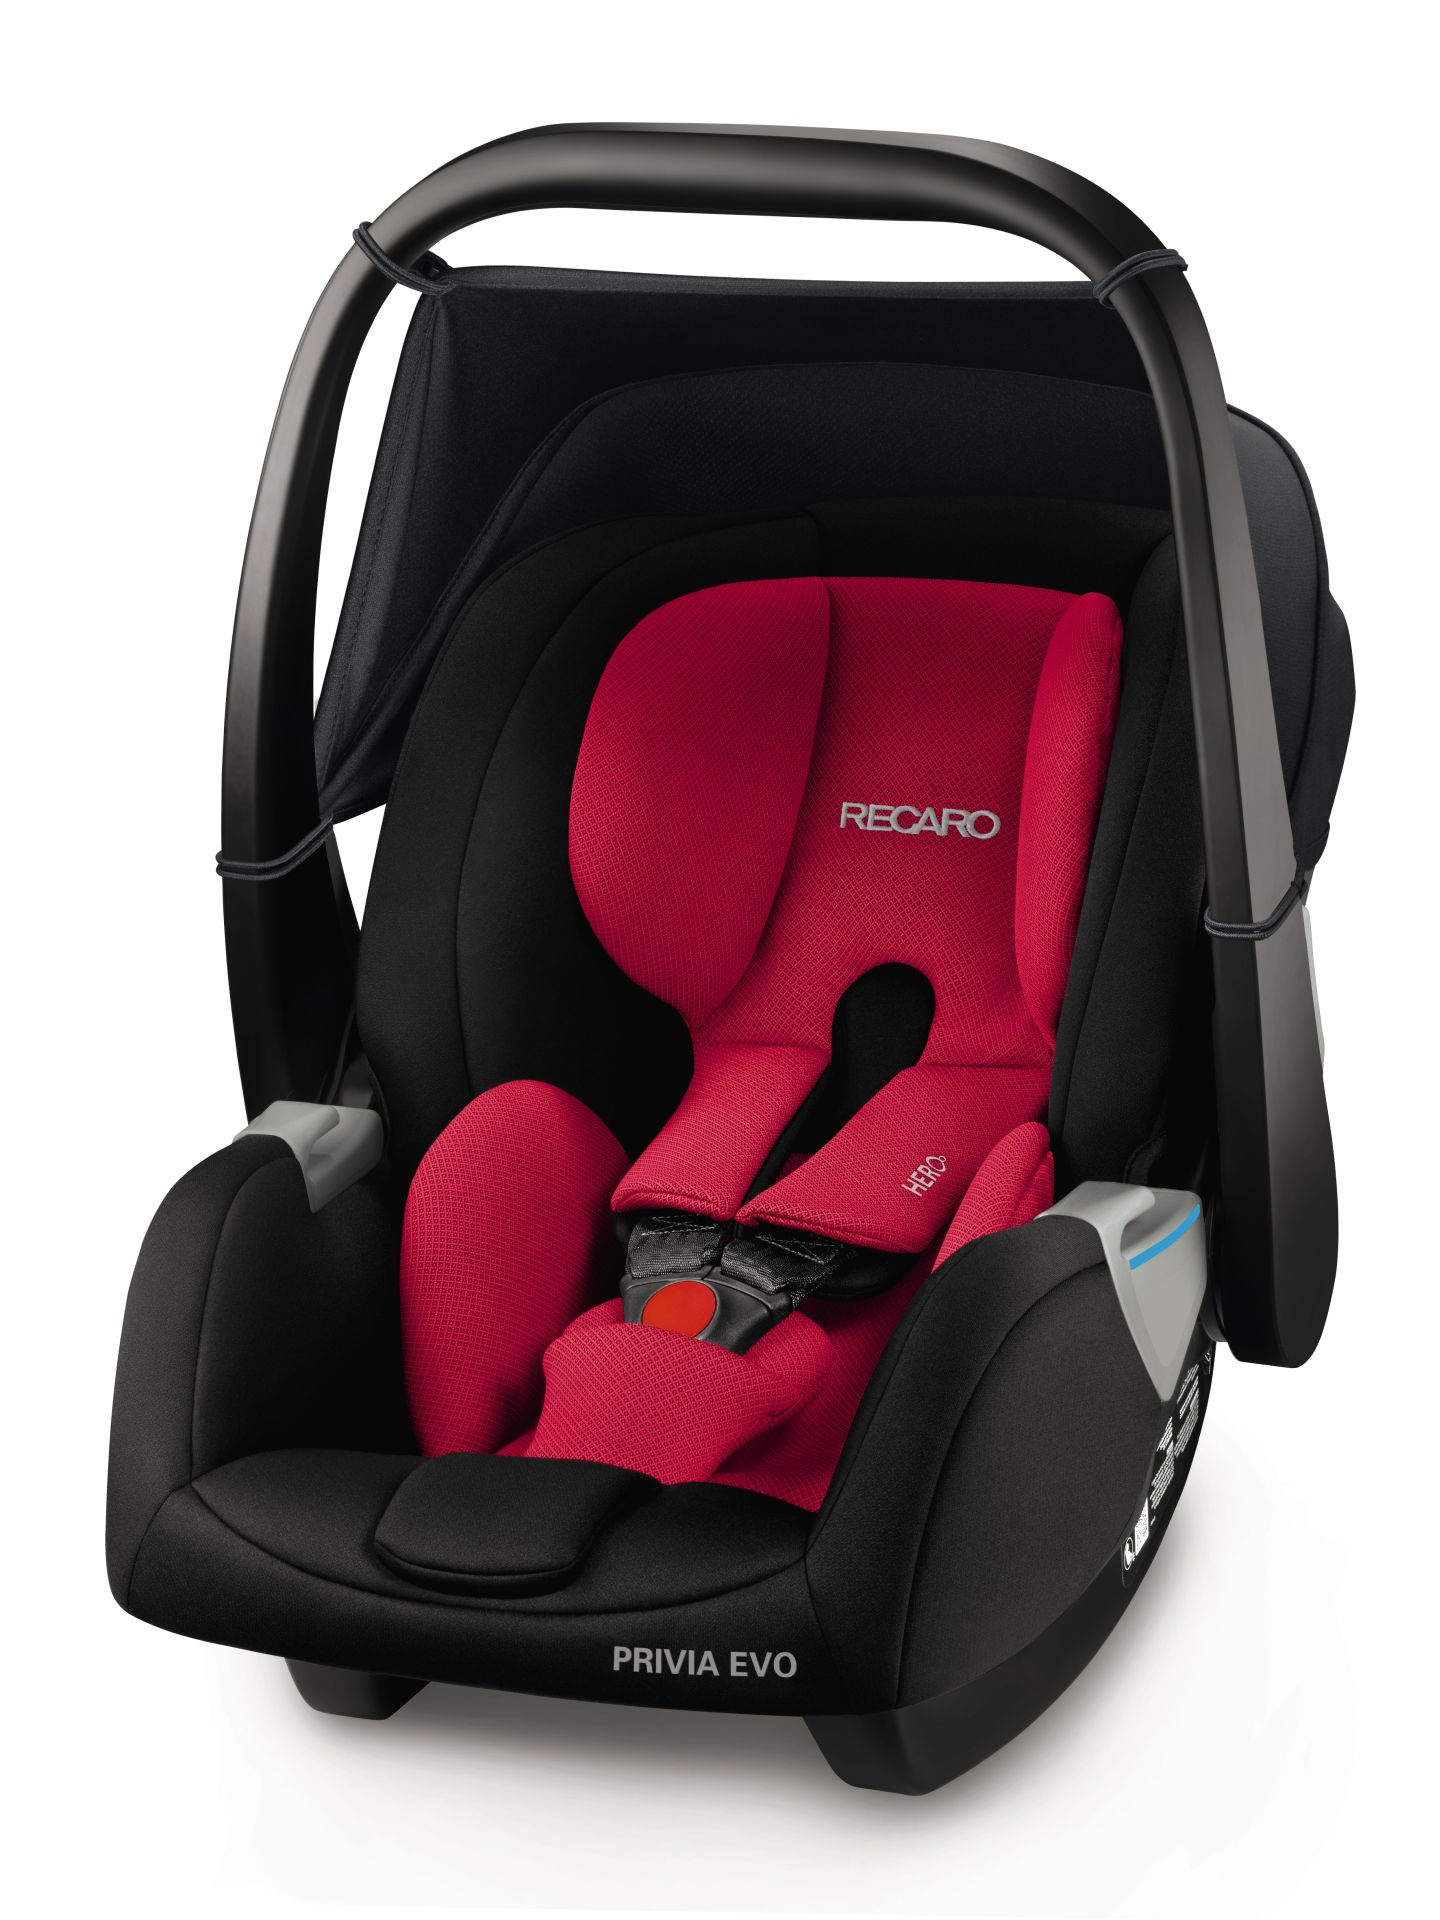 Recaro Infant Car Seat Privia Evo - Buy at kidsroom | Car Seats